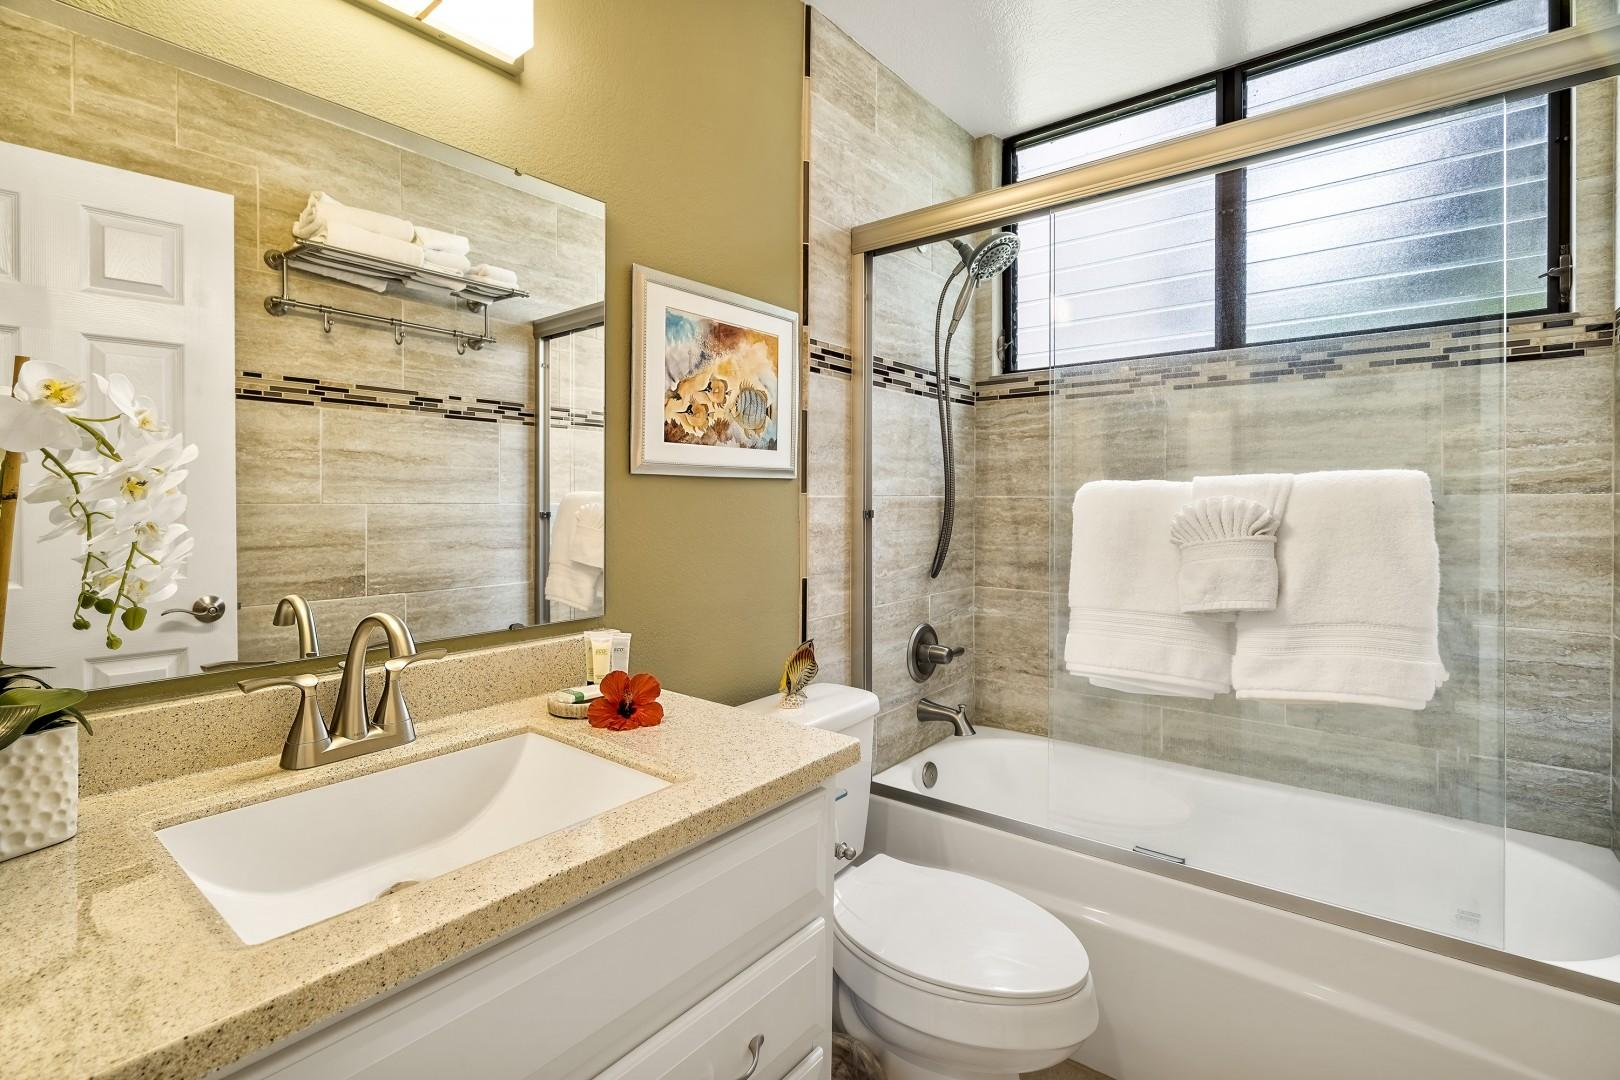 Fully renovated guest bathroom!